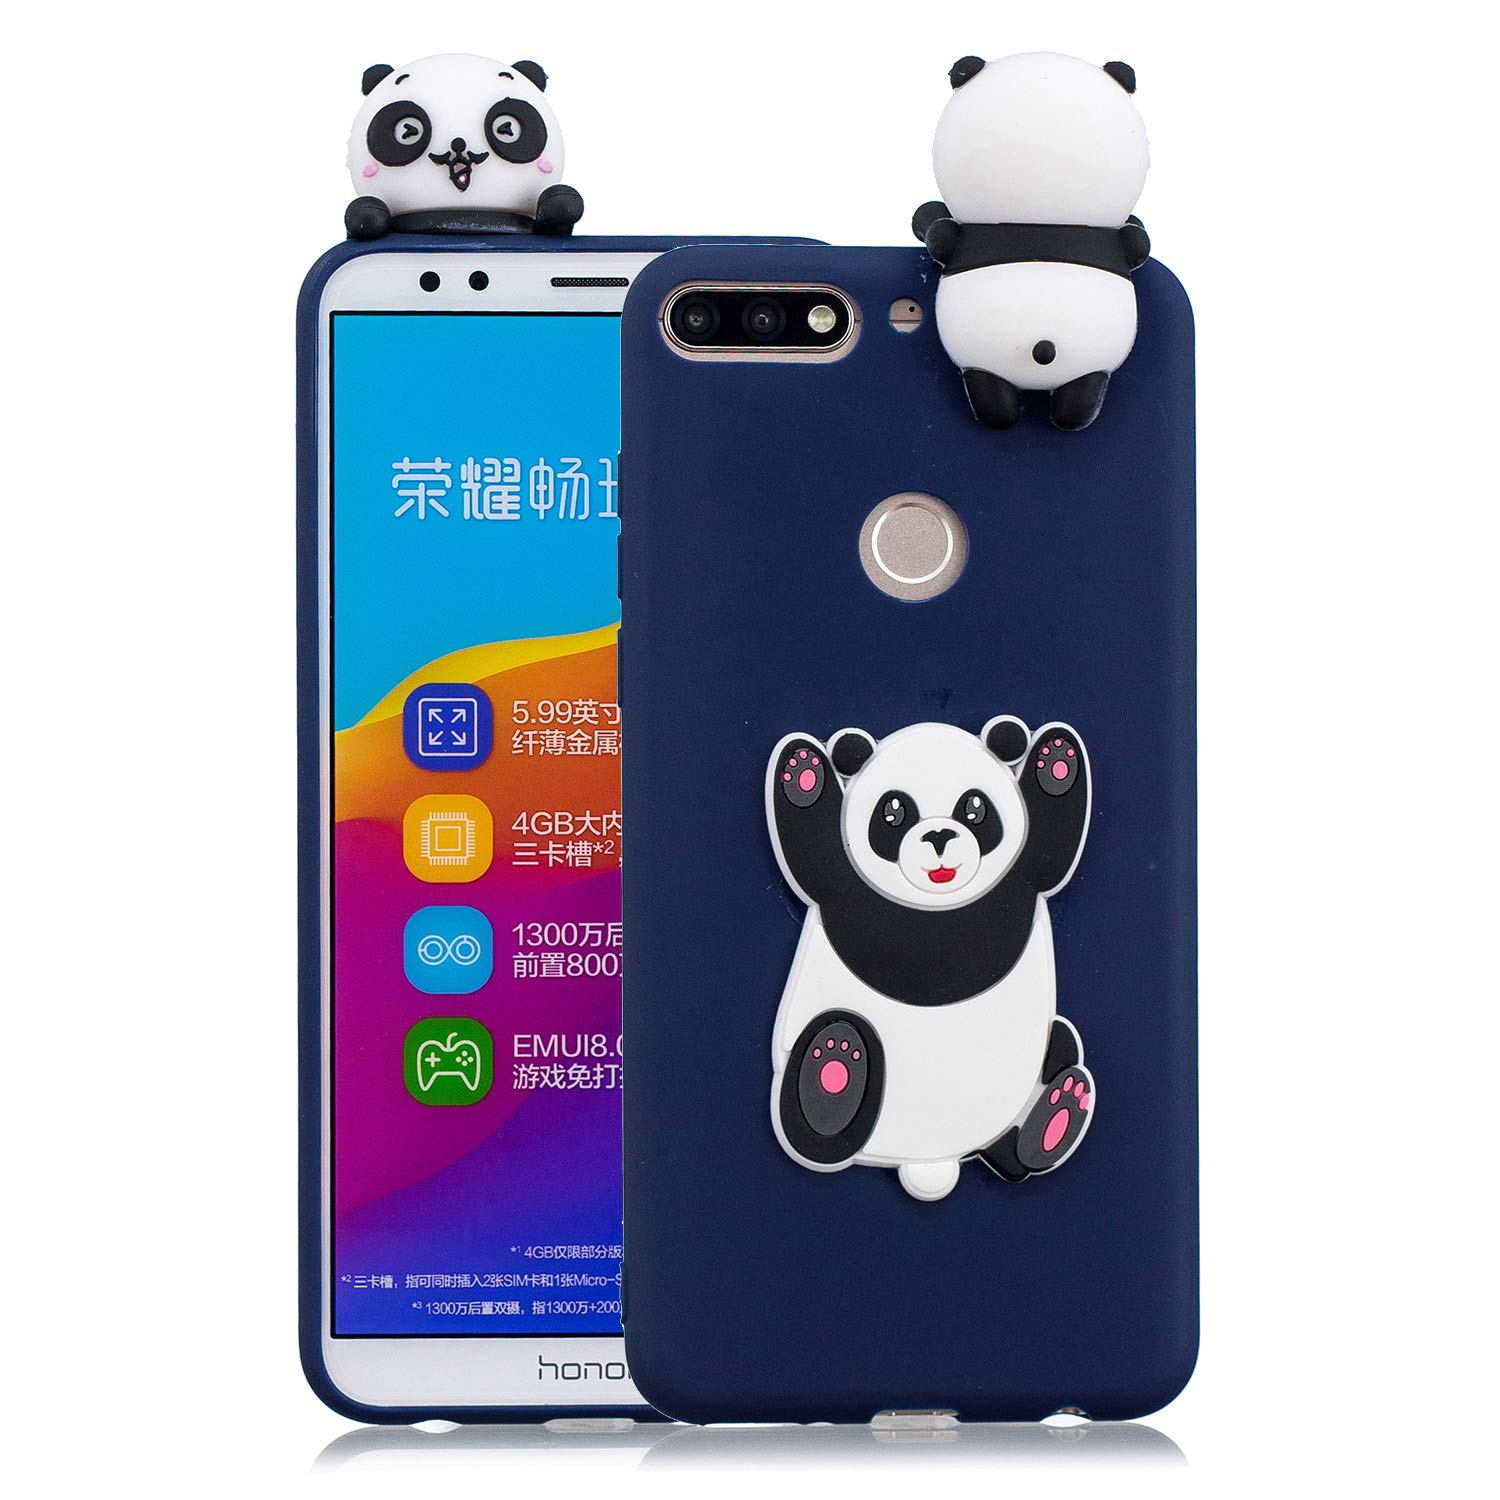 HopMore Coque Huawei Y7 2018 / Honor 7C Silicone Souple 3D Design Motif Panda Animal Drôle Mignonne Etui Huawei Honor 7C / Y7 2018 Étui Antichoc Ultra Mince Fine Gel Bumper Slim Case Housse Protection pour Fille Femme - Panda Girl